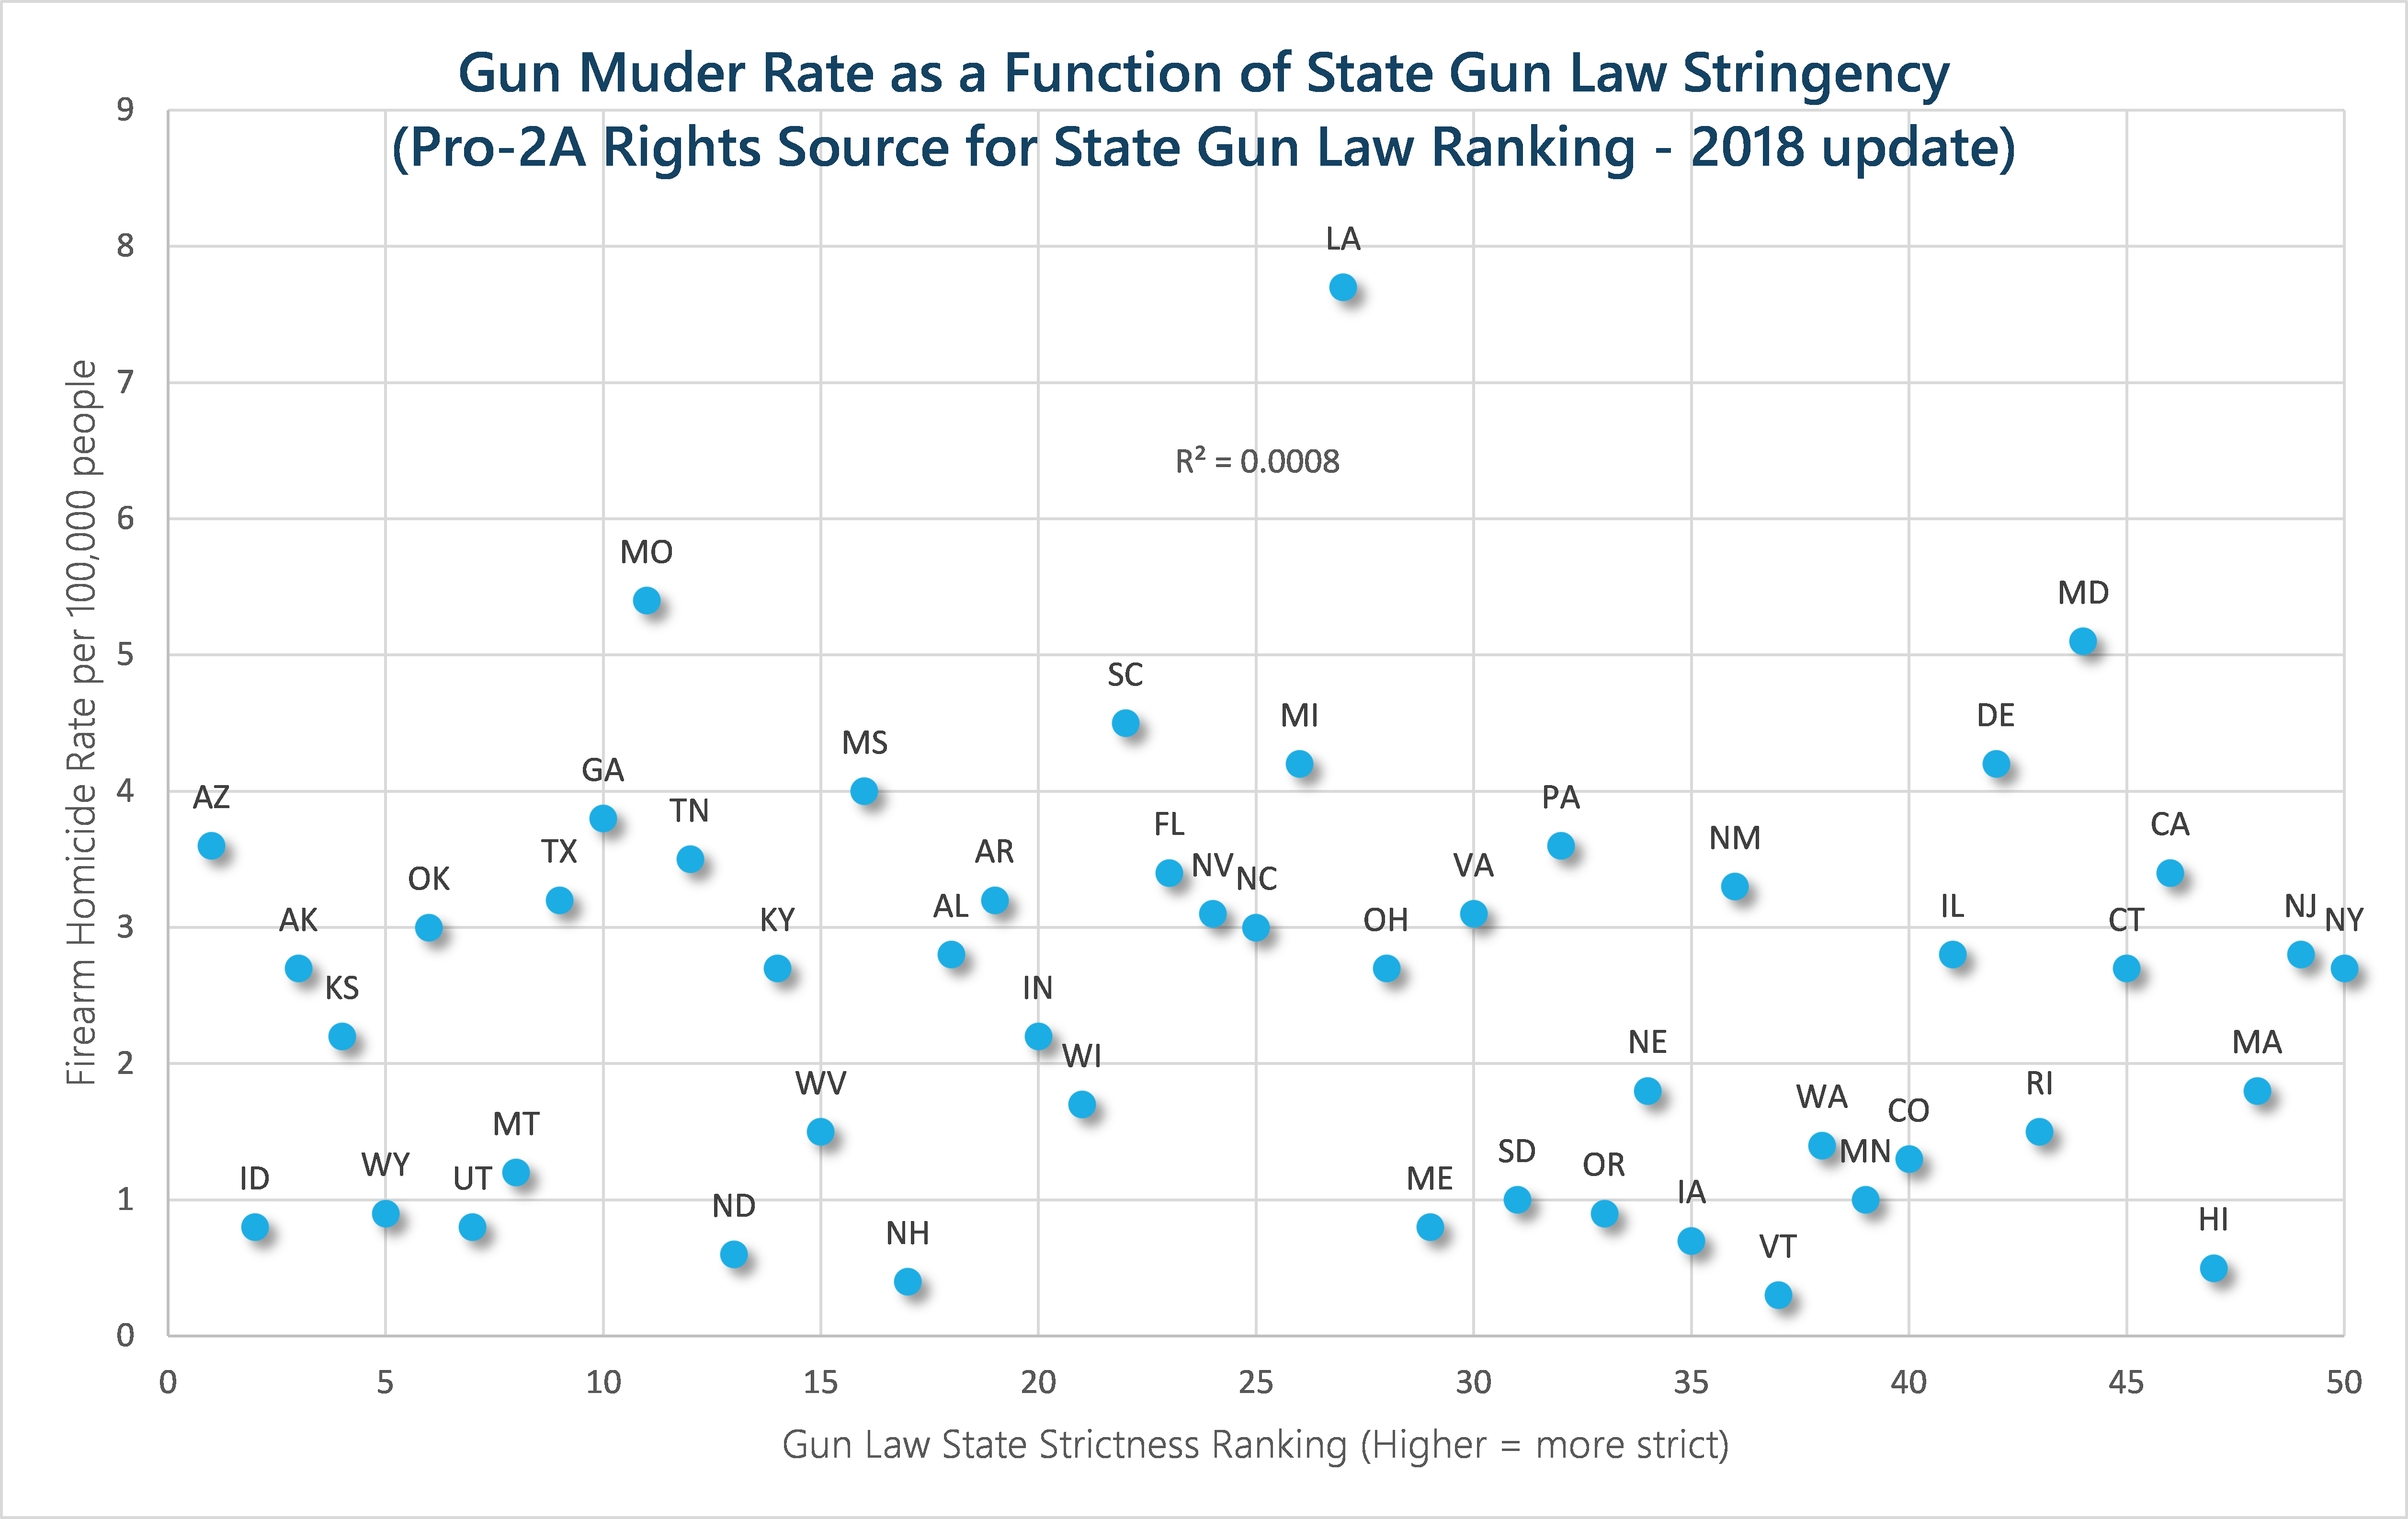 gun_murders_and_laws_by_state_pro_gun_2018